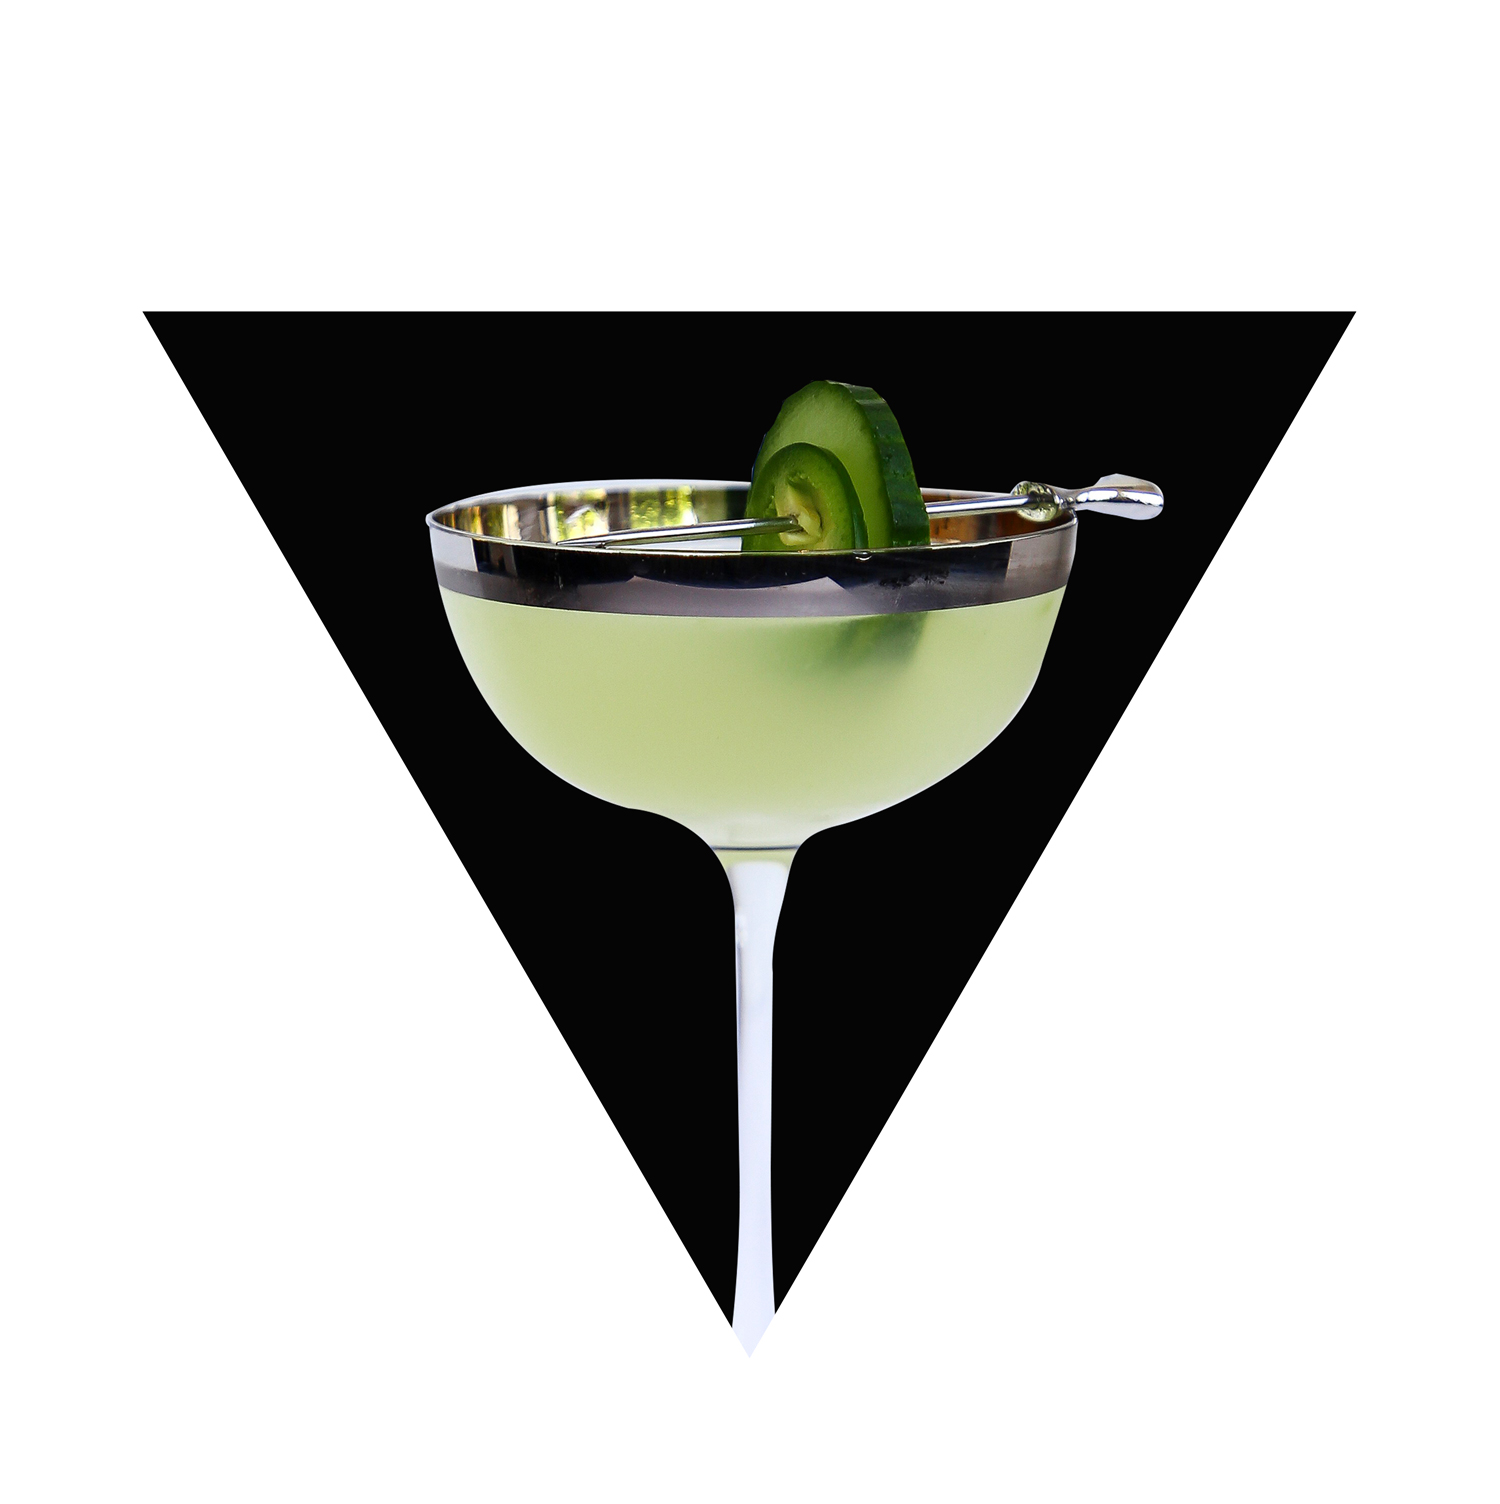 JalapeÑo Cucumber - Ingredients:2 oz VIVA Joven Tequila1 oz Fresh Lime Juice1/2 oz Agave Syrup2 Slices Cucumber2 Slices Jalapeño PepperHow To Mix:Add cucumber, jalapeño, and lime into shaker and muddle. Follow with the tequila and agave syrup. Add ice and shake well. Strain into rocks glass over ice. Garnish with a speared slice of cucumber and jalapeño.